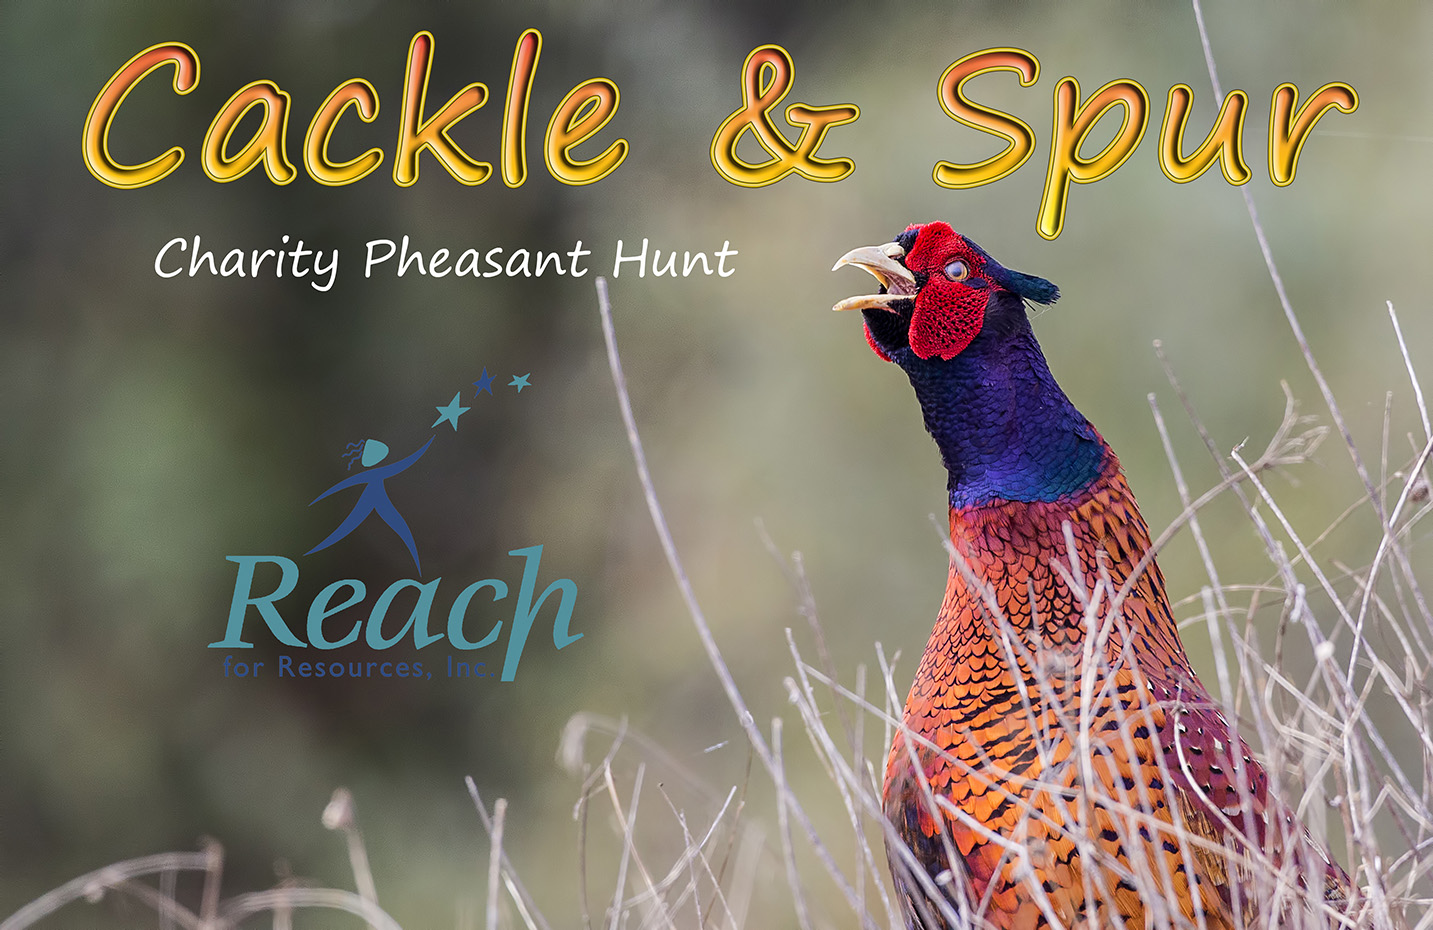 Cackle & Spur Event